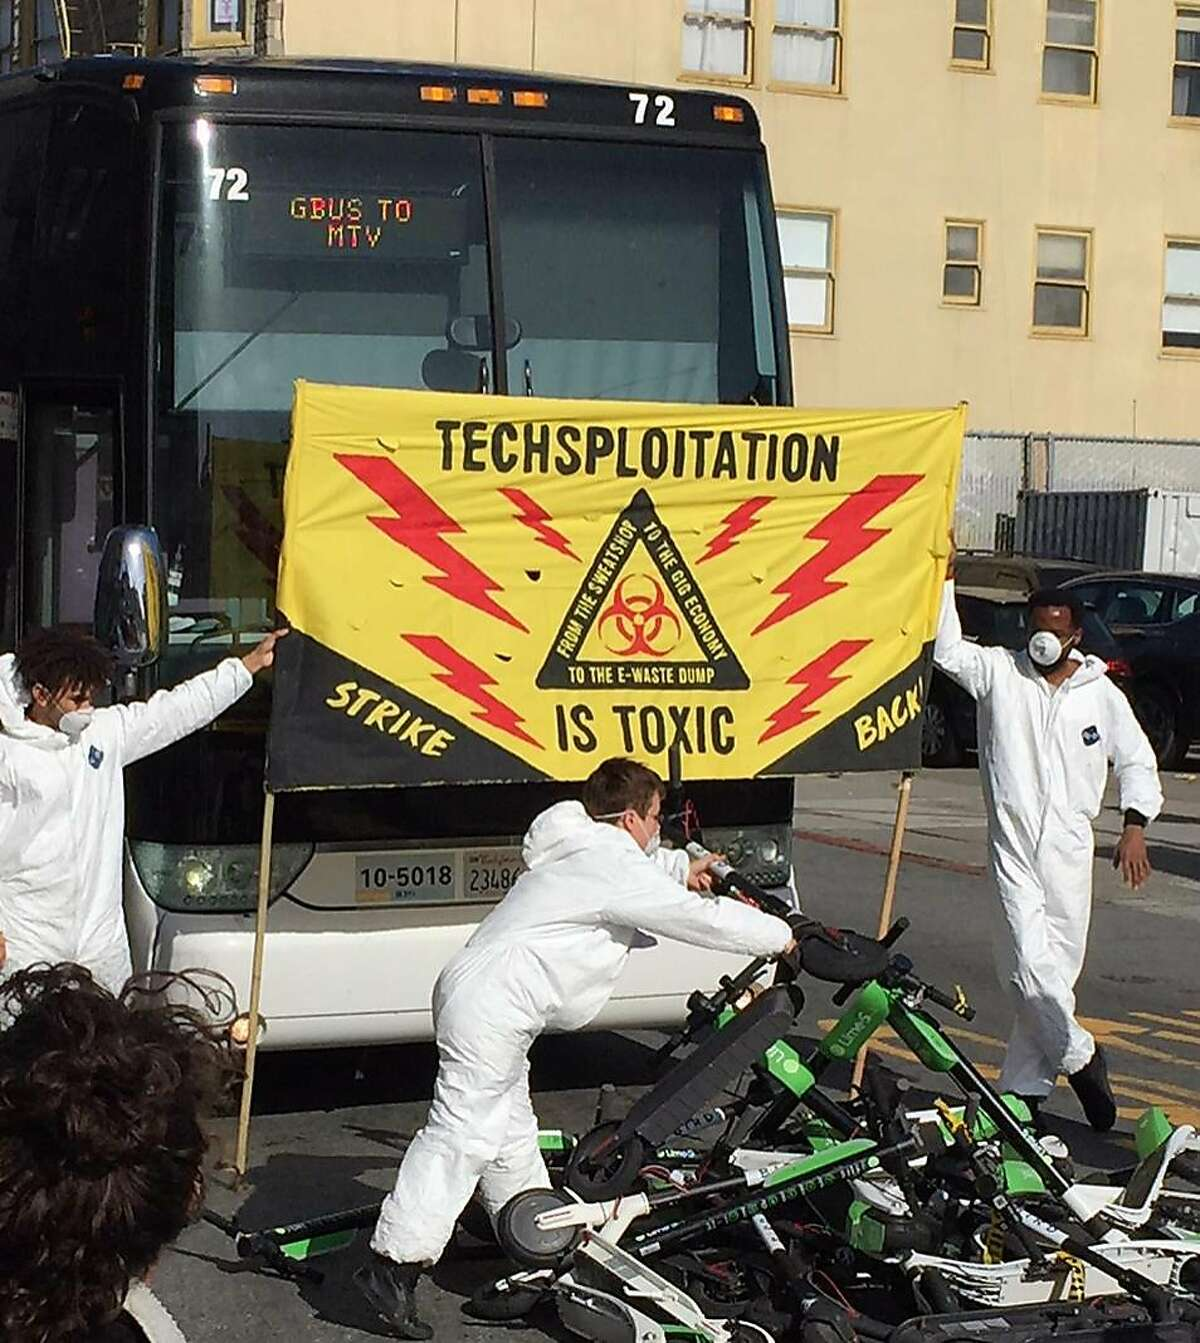 Protesters use scooters to block at least a dozen tech-industry buses in San Francisco, May 31, 2018. A simmering battle erupted once more over displacement, eviction and who owns the streets and neighborhoods of the high-tech capital. (David Streitfeld/The New York Times)